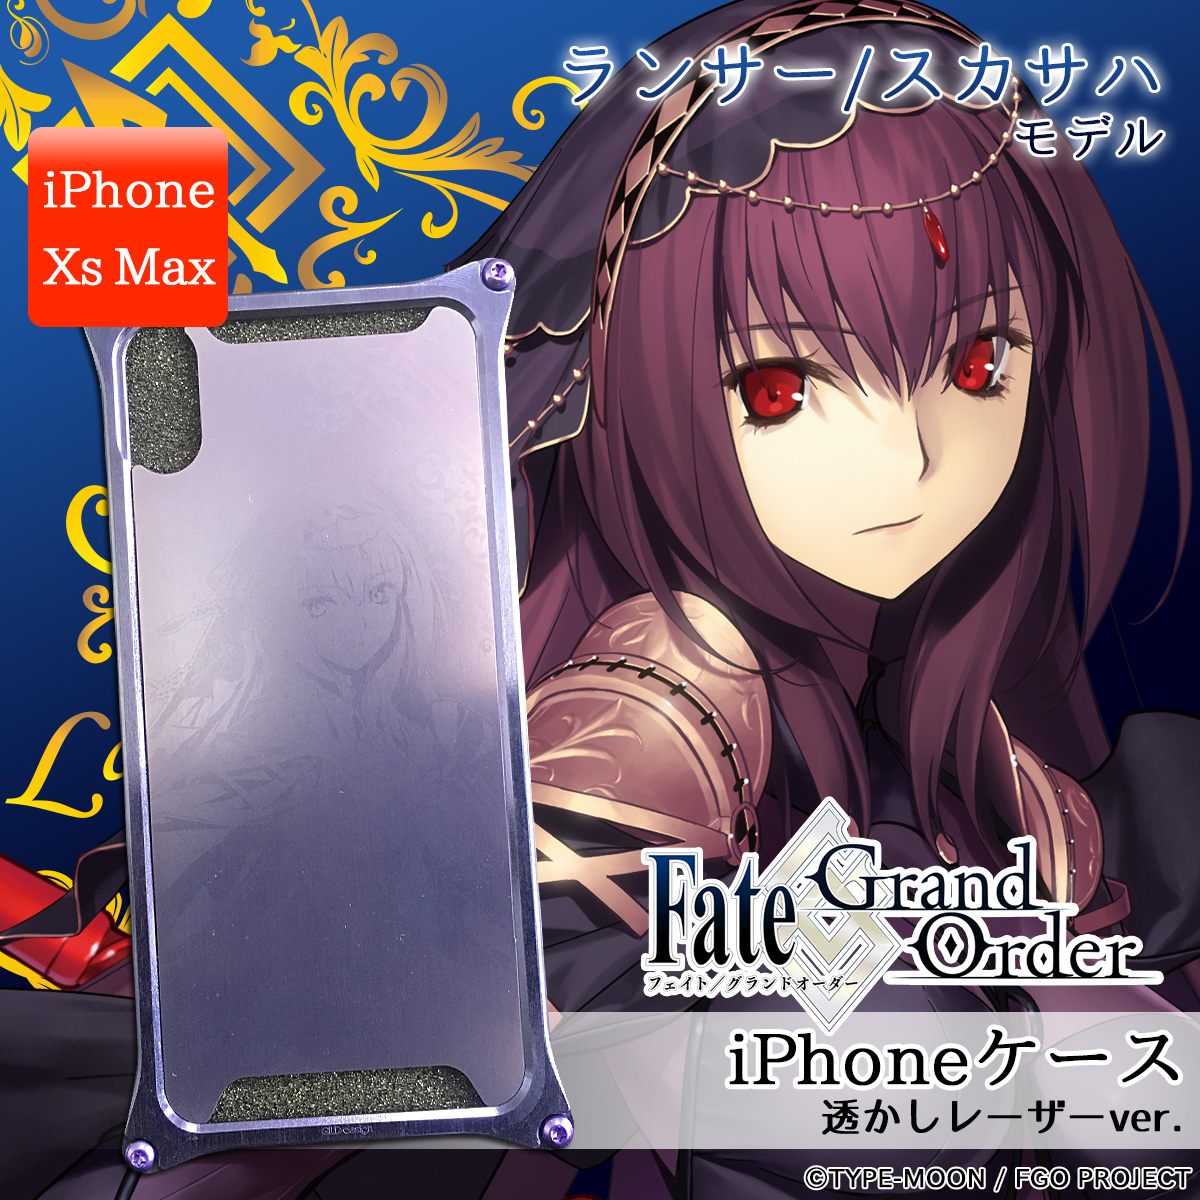 『Fate/Grand Order』×『GILD design』iPhoneXsMaxケース ランサー/スカサハ 透かしレーザーver.